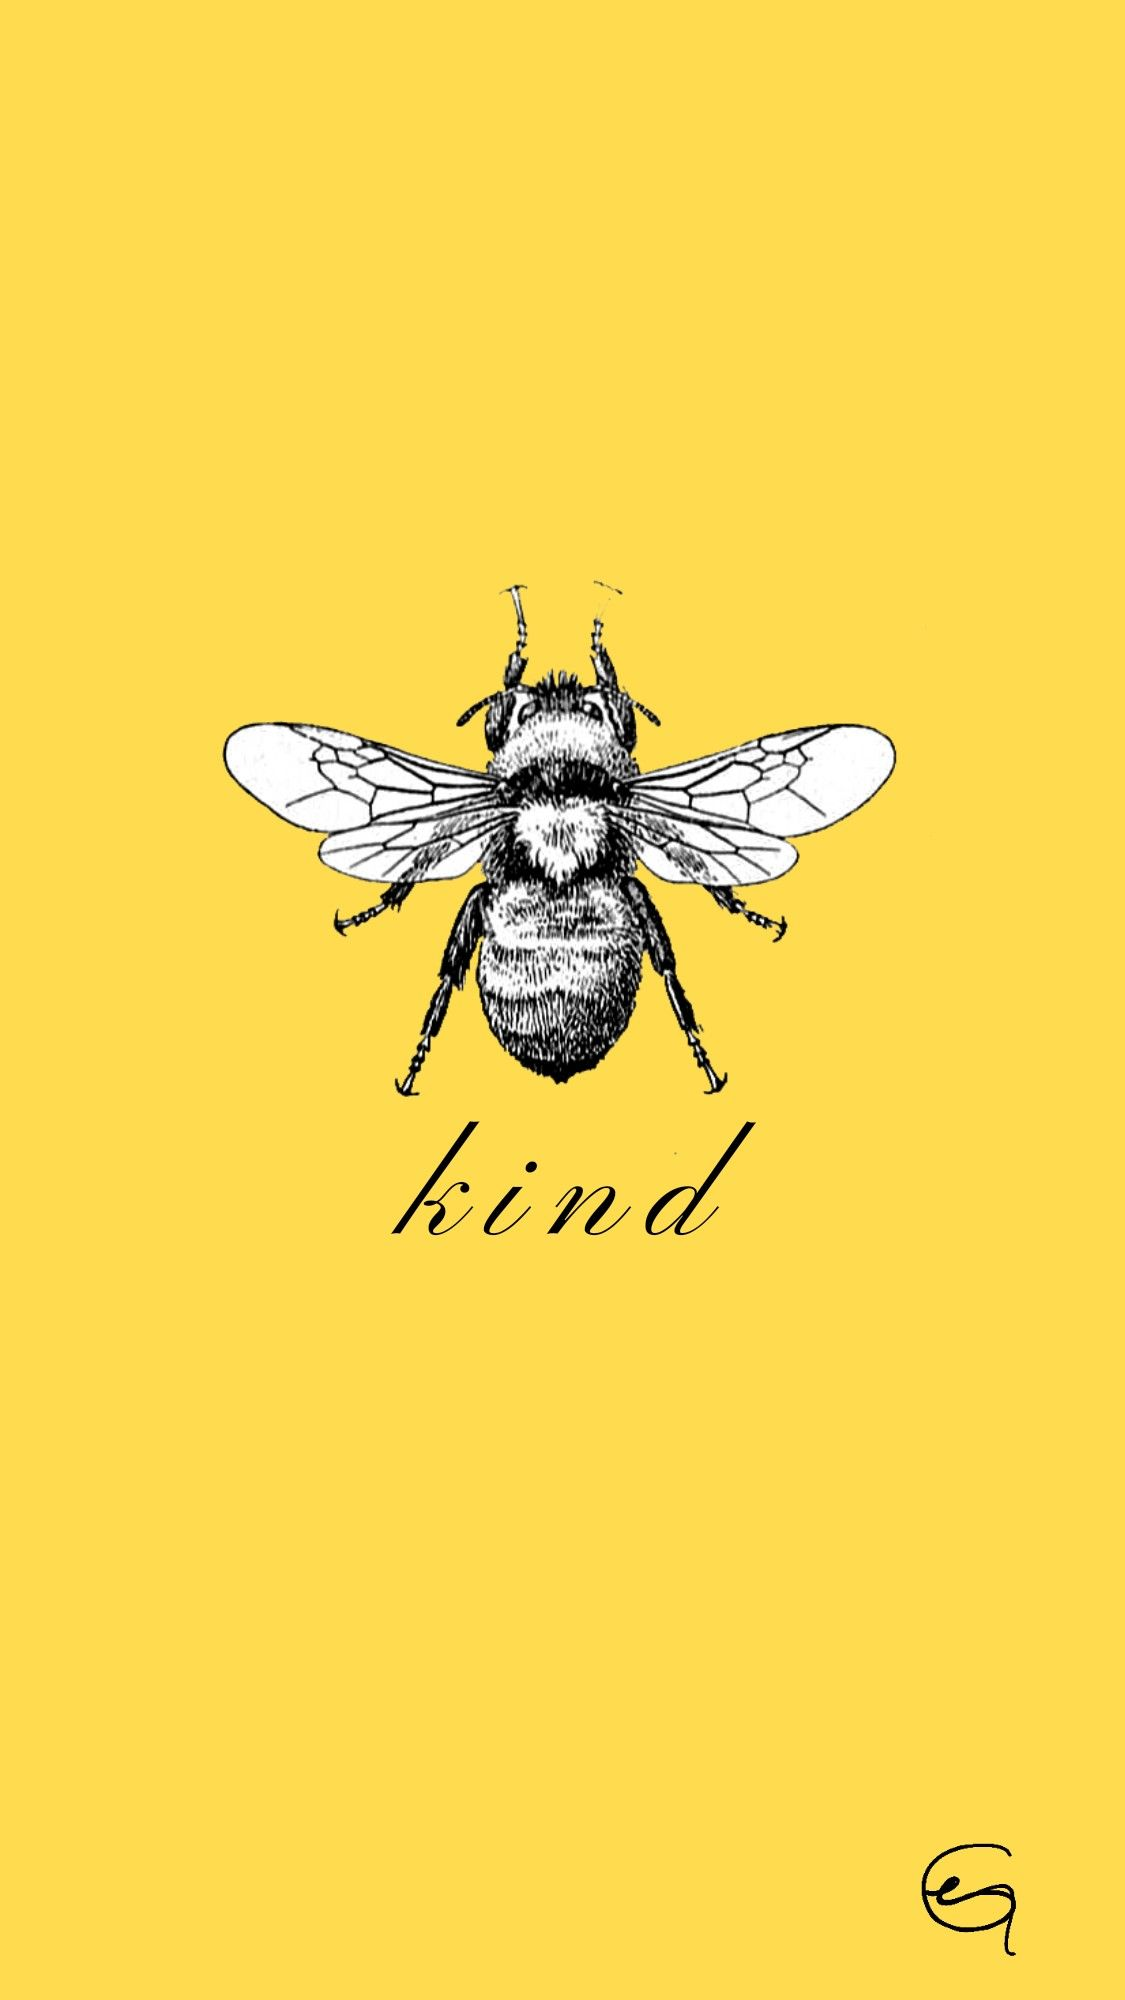 yellow bee wallpaper/background yellowaesthetic bee